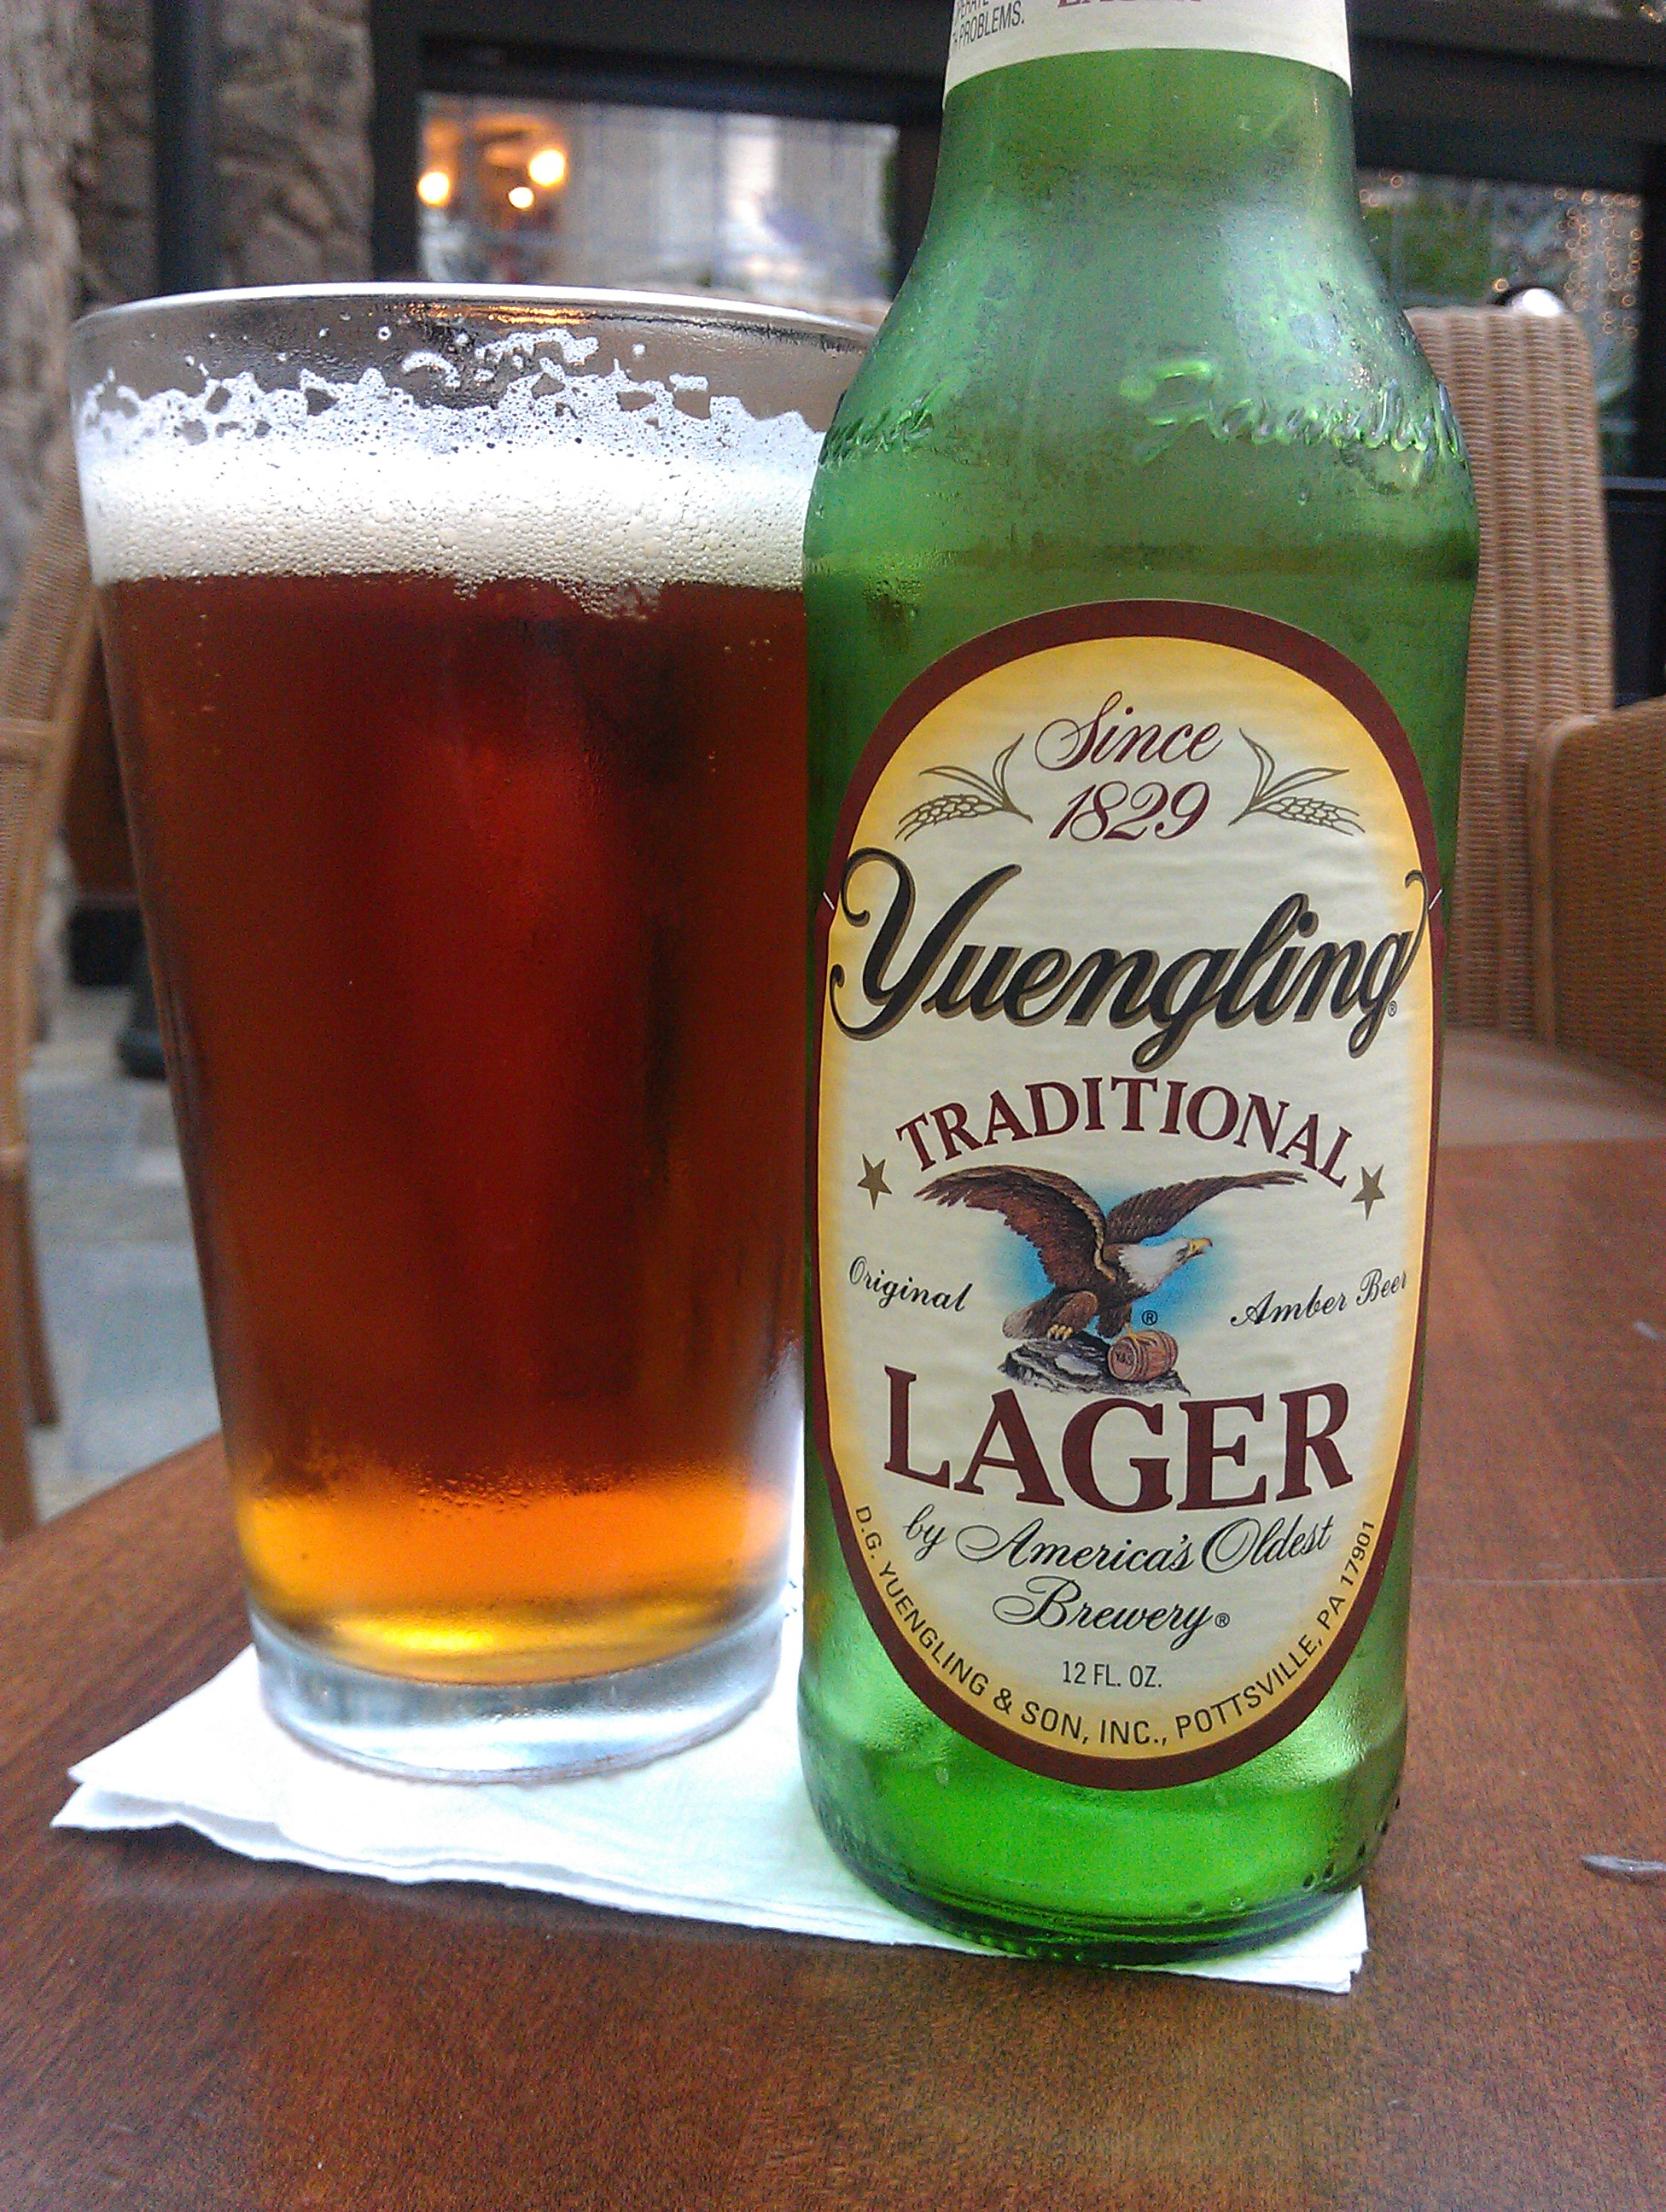 https://sommbeer.com/wp-content/uploads/2014/11/Yuengling-Traditional-Lager-2.jpg